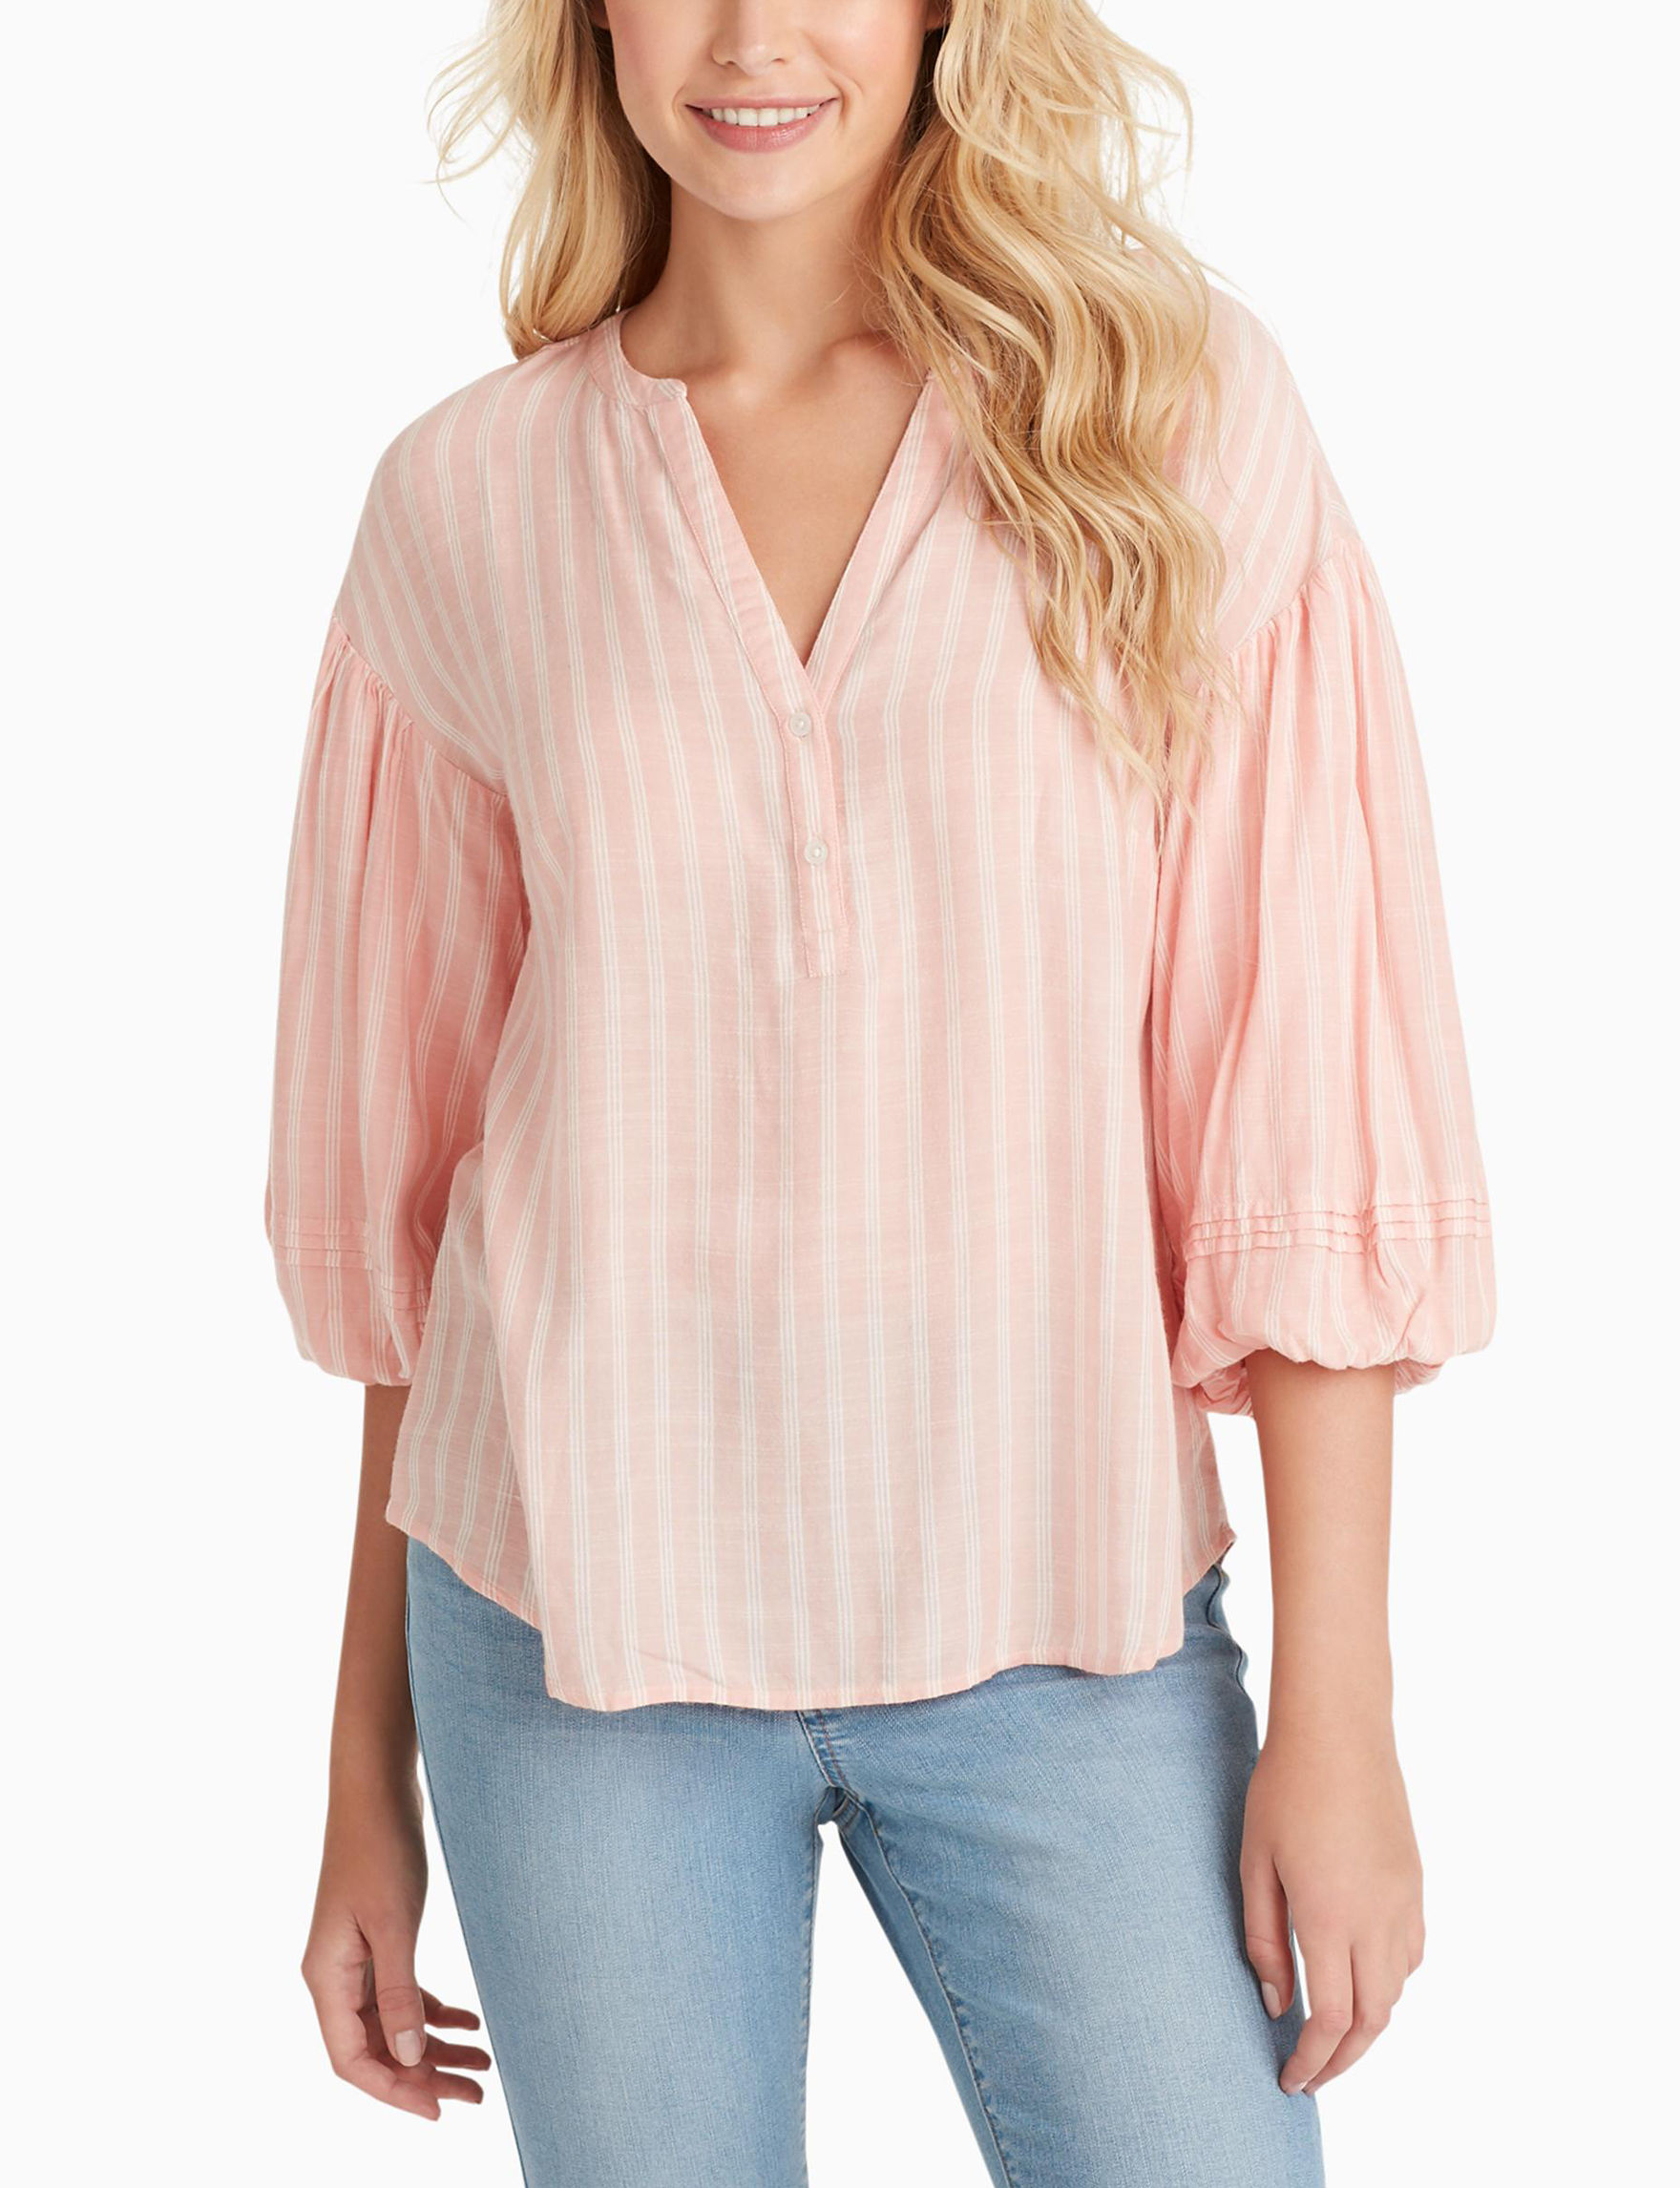 Jessica Simpson Pink / White Shirts & Blouses